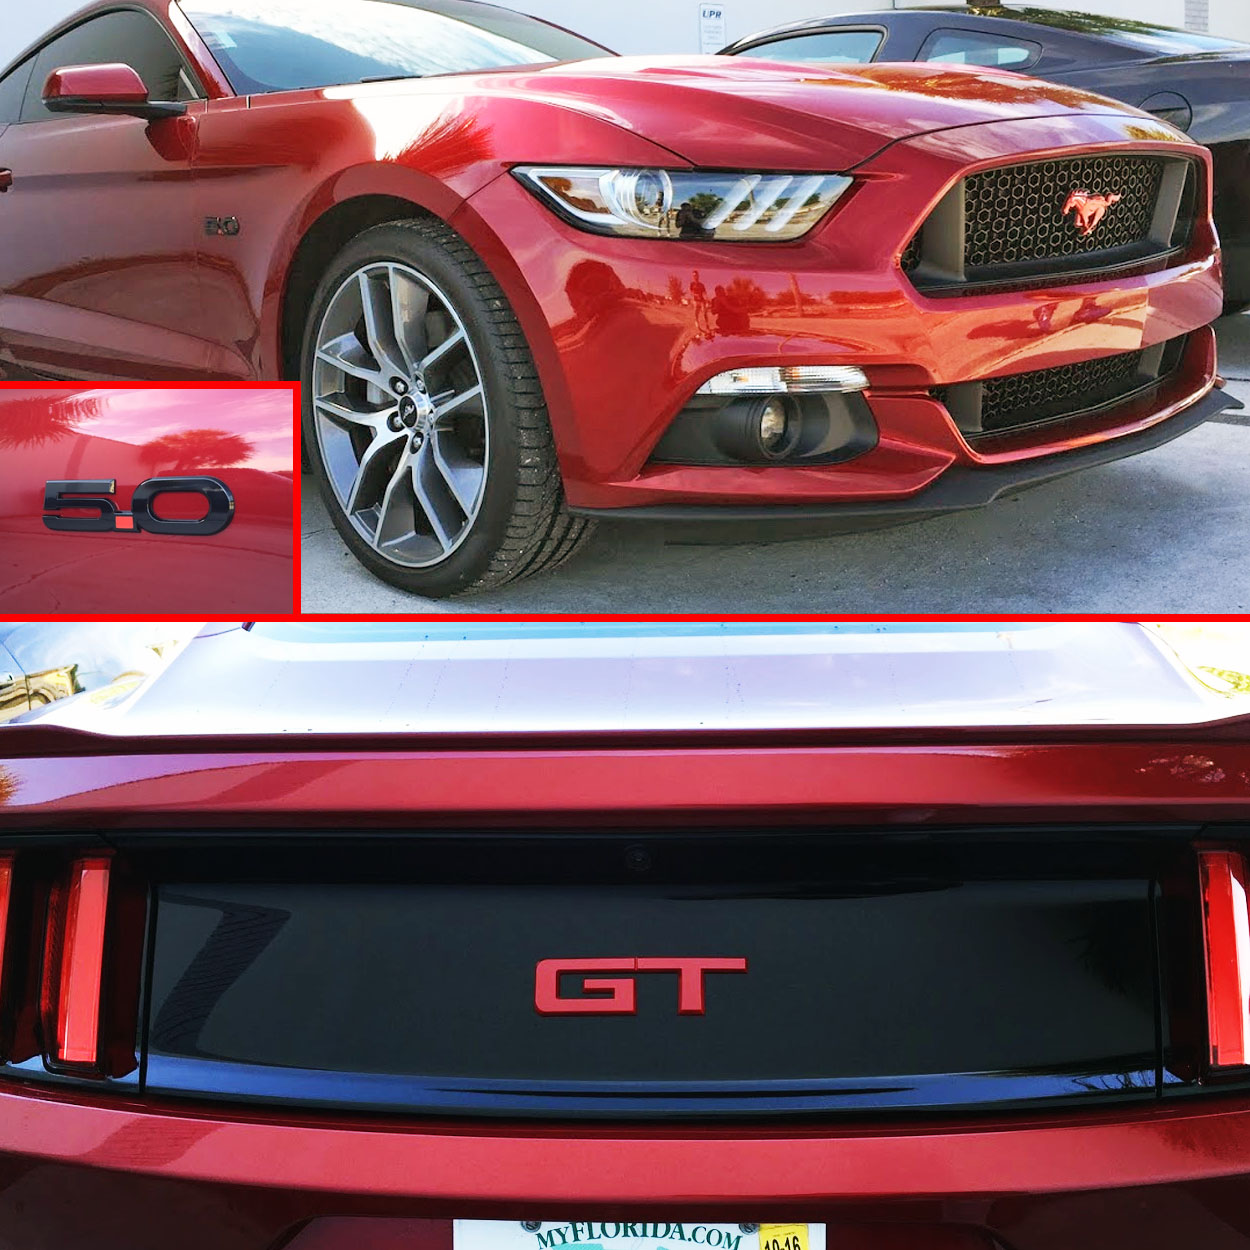 15-17 mustang gt emblem package color coded ford officially licensed